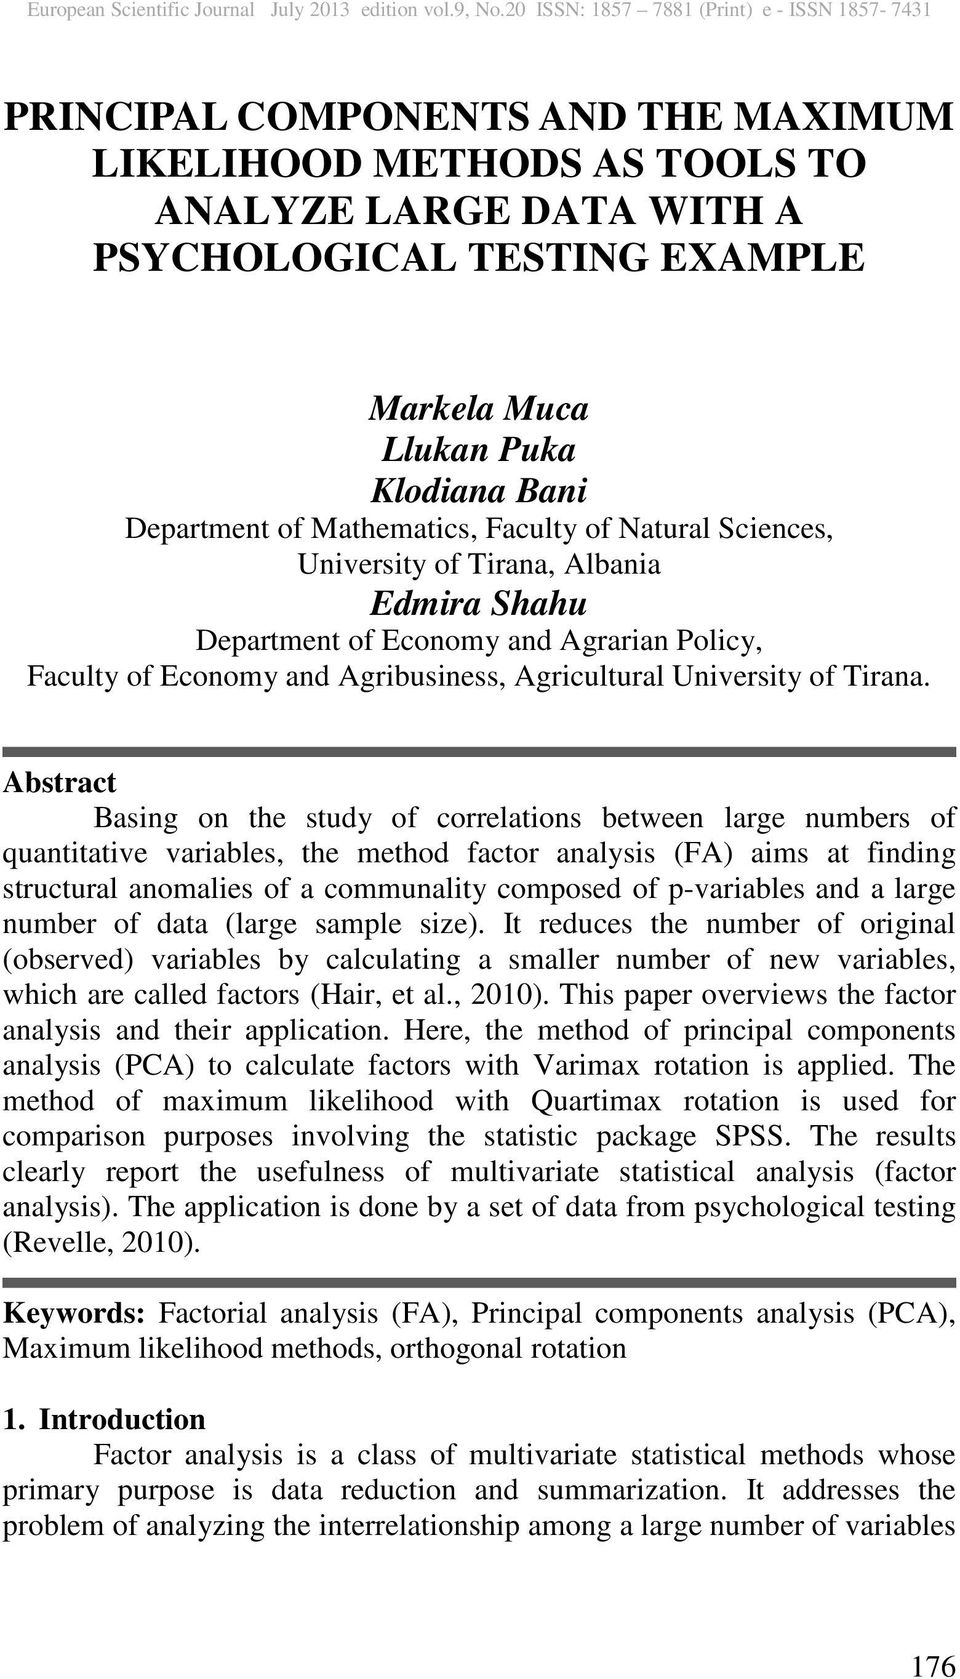 Abstract Basing on the study of correlations between large numbers of quantitative variables, the method factor analysis (FA) aims at finding structural anomalies of a communality composed of